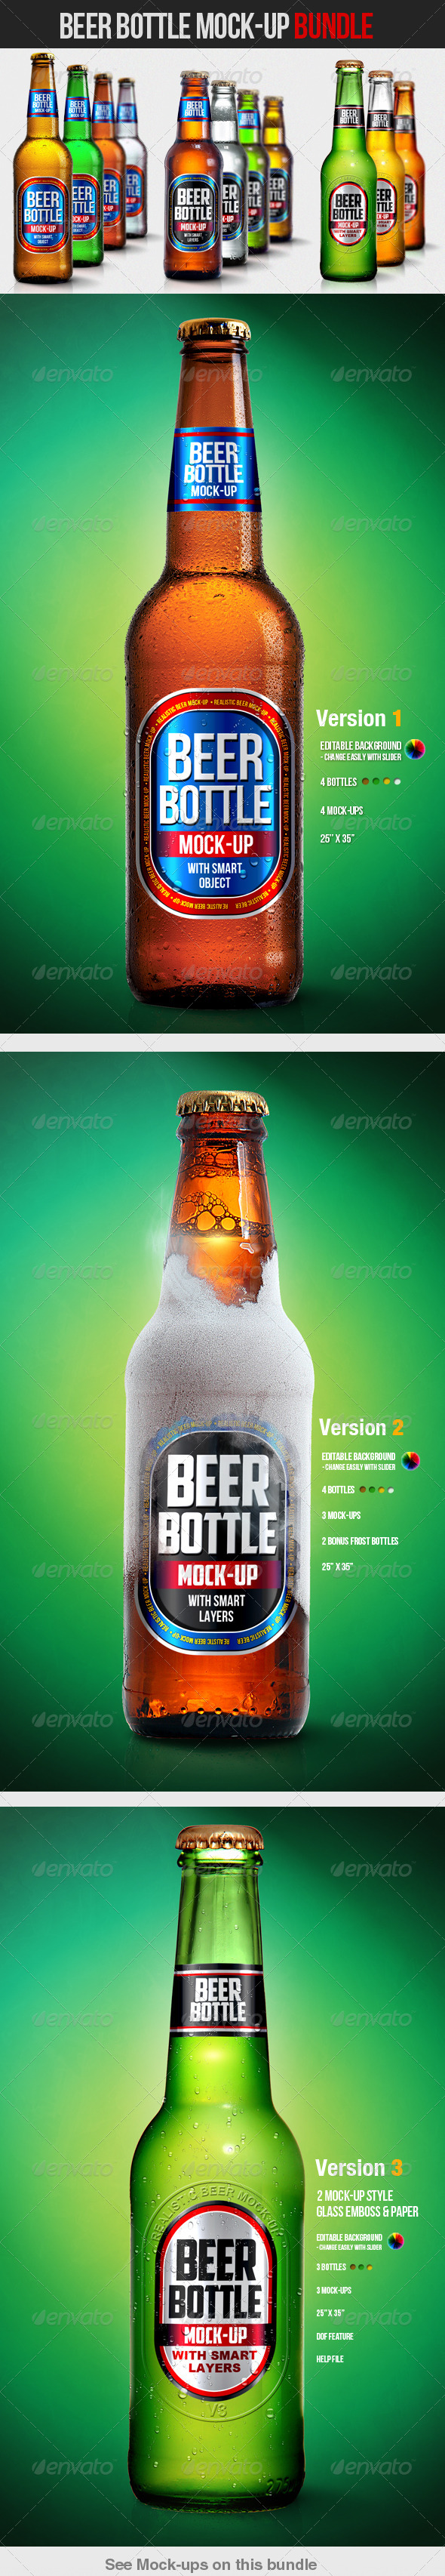 Beer Bottle Mockup Bundle